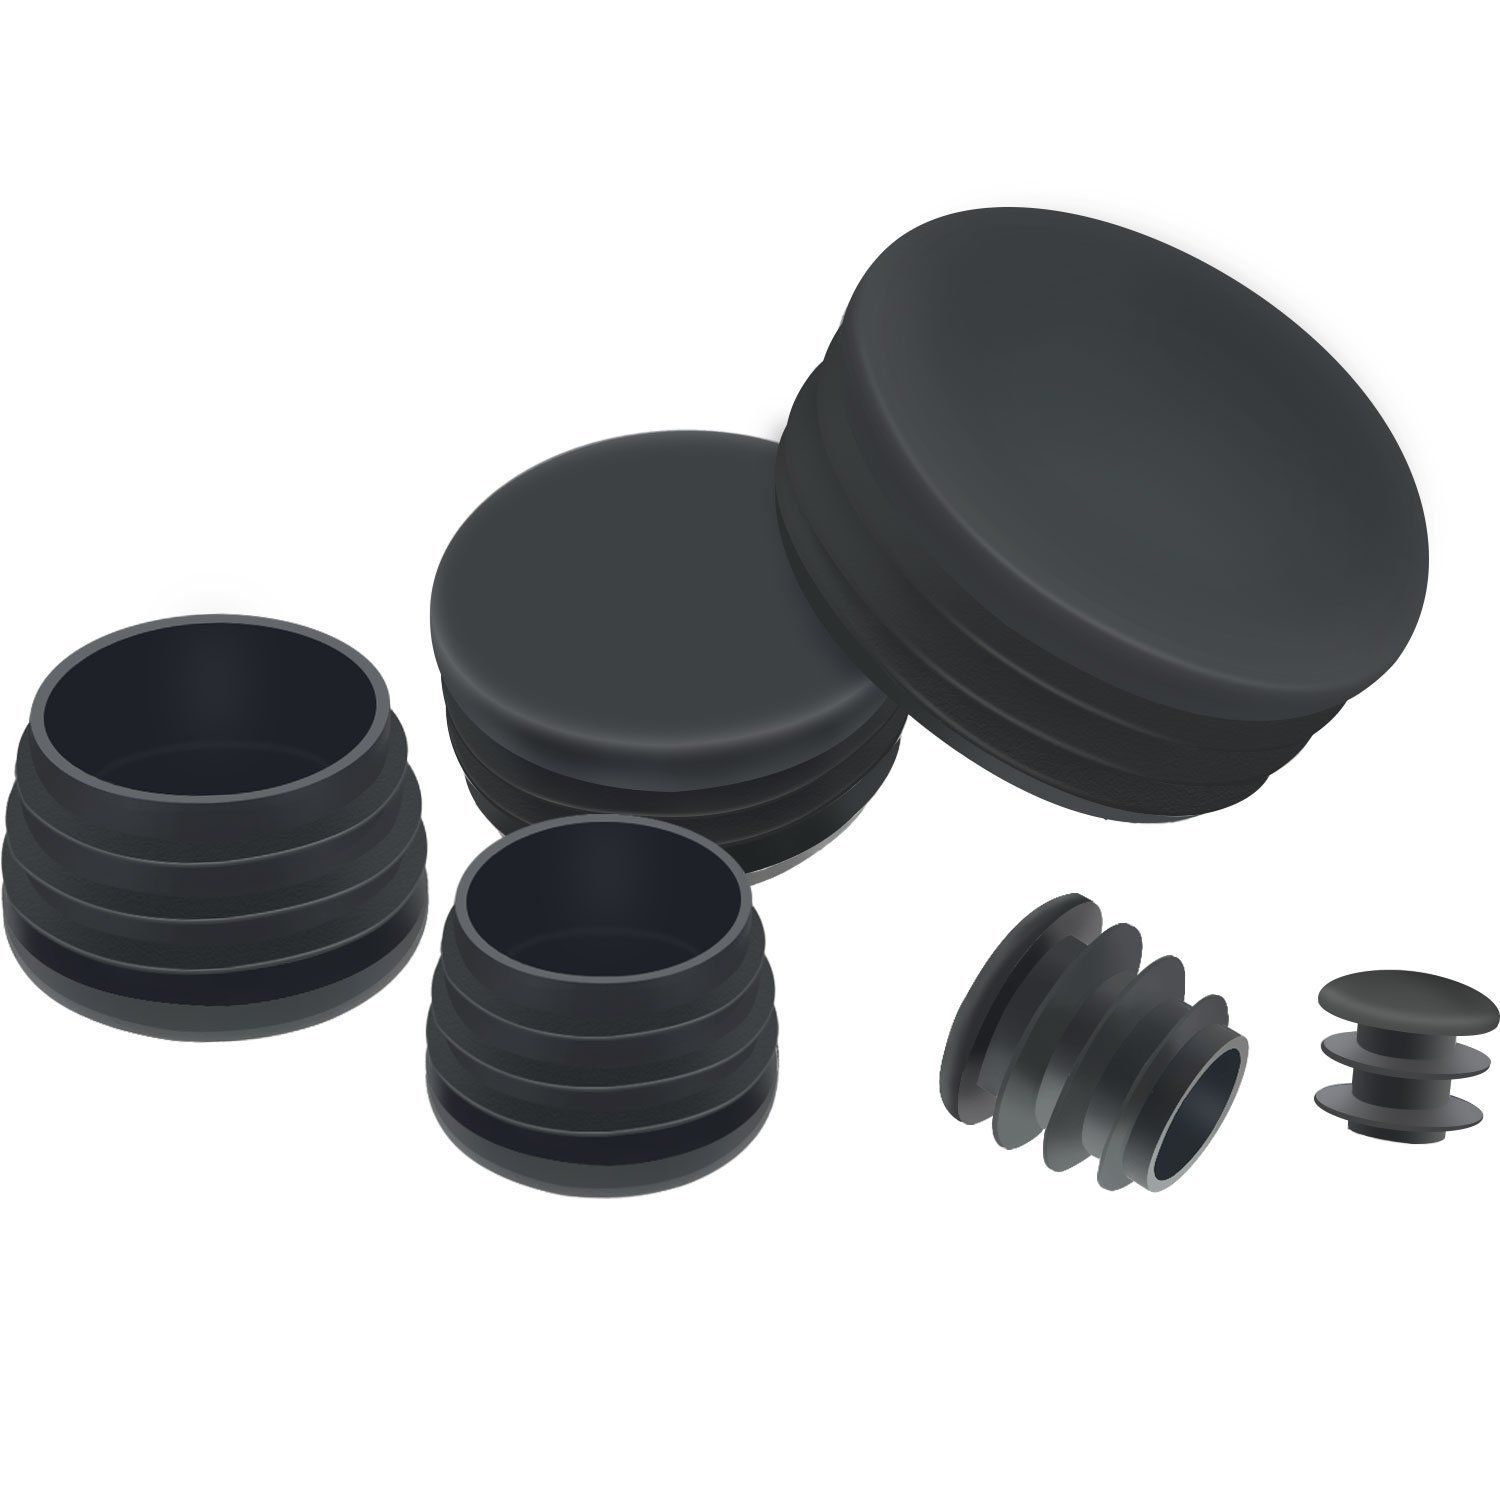 1 1 16 In X 7 8 In Black Rubber Stopper Rubber Plug Rubber Bumper Wholesale Supplier In China Rubber Stoppers Rubber Bumper Plugs